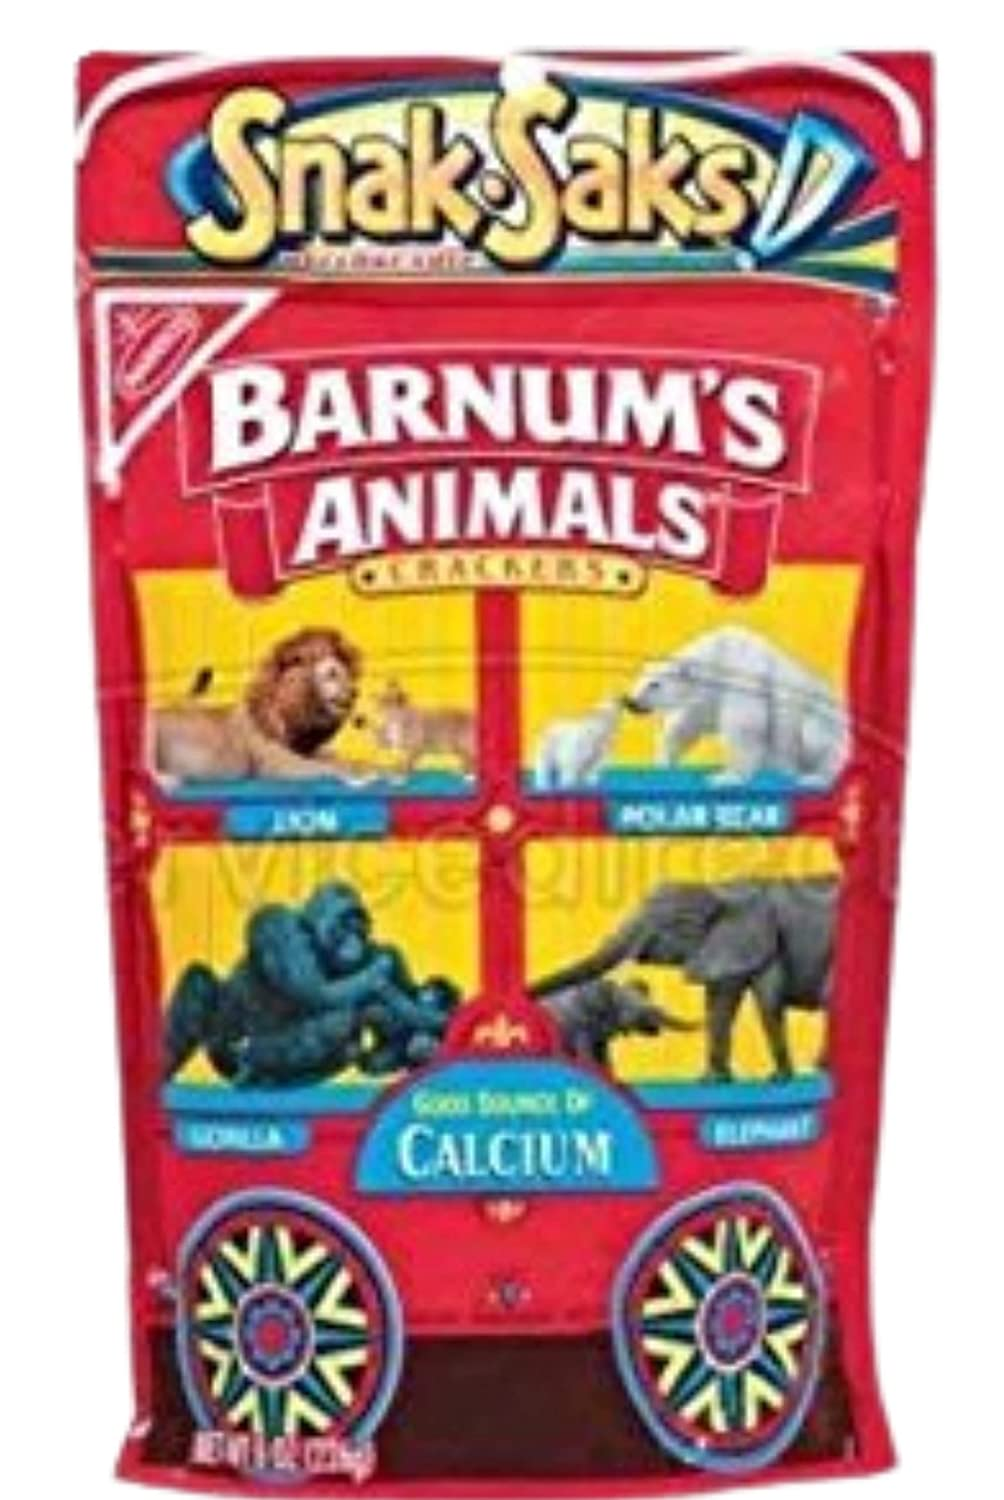 Nabisco Barnum's Animal Crackers Snack-Saks Bag Pack Easy-to-use Cheap mail order sales 8oz of